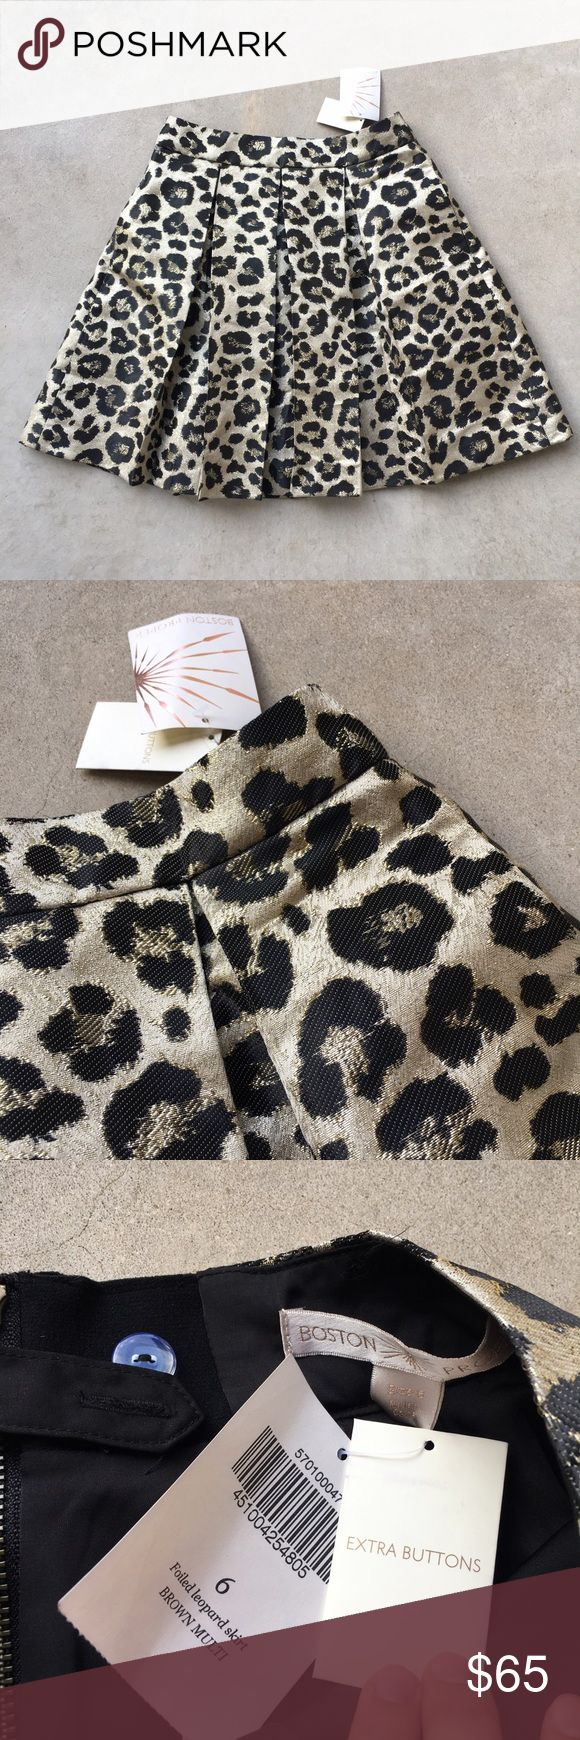 """NWT Boston Proper Foiled Leopard Skirt Gold 6 Brand new with tags. Pictures don't do this skirt justice! Measurements (when flat on table):  Waist across: 14"""" Length: 18.5"""" C1 Boston Proper Skirts A-Line or Full"""